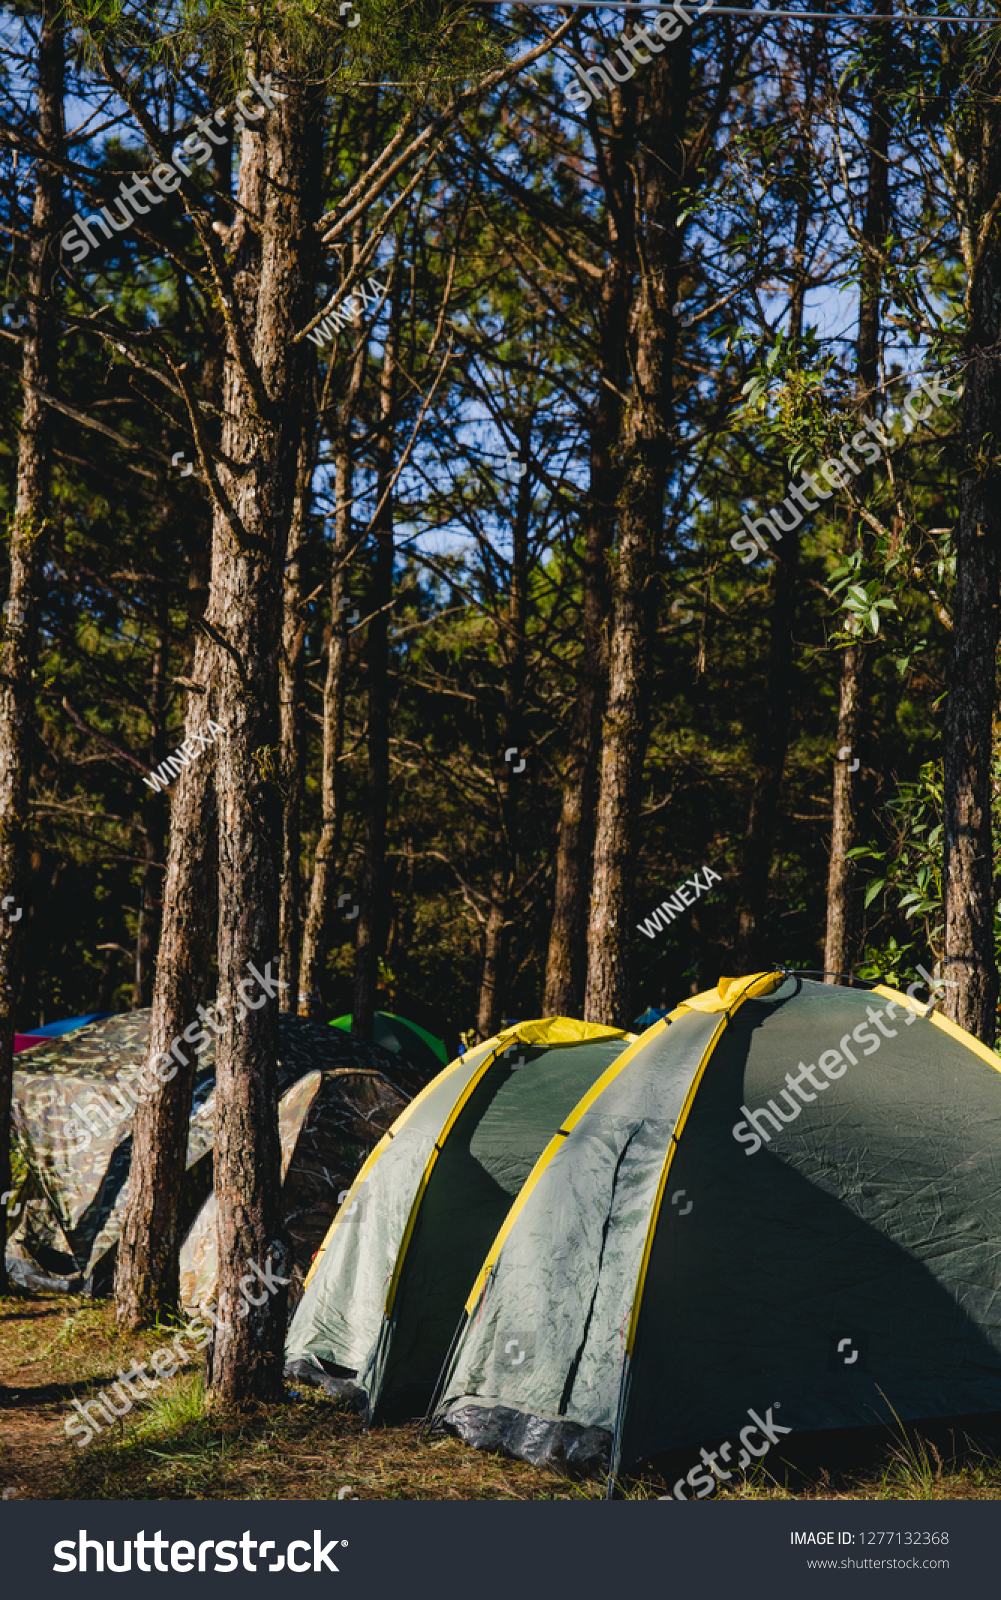 tent camping on grass near tree #1277132368